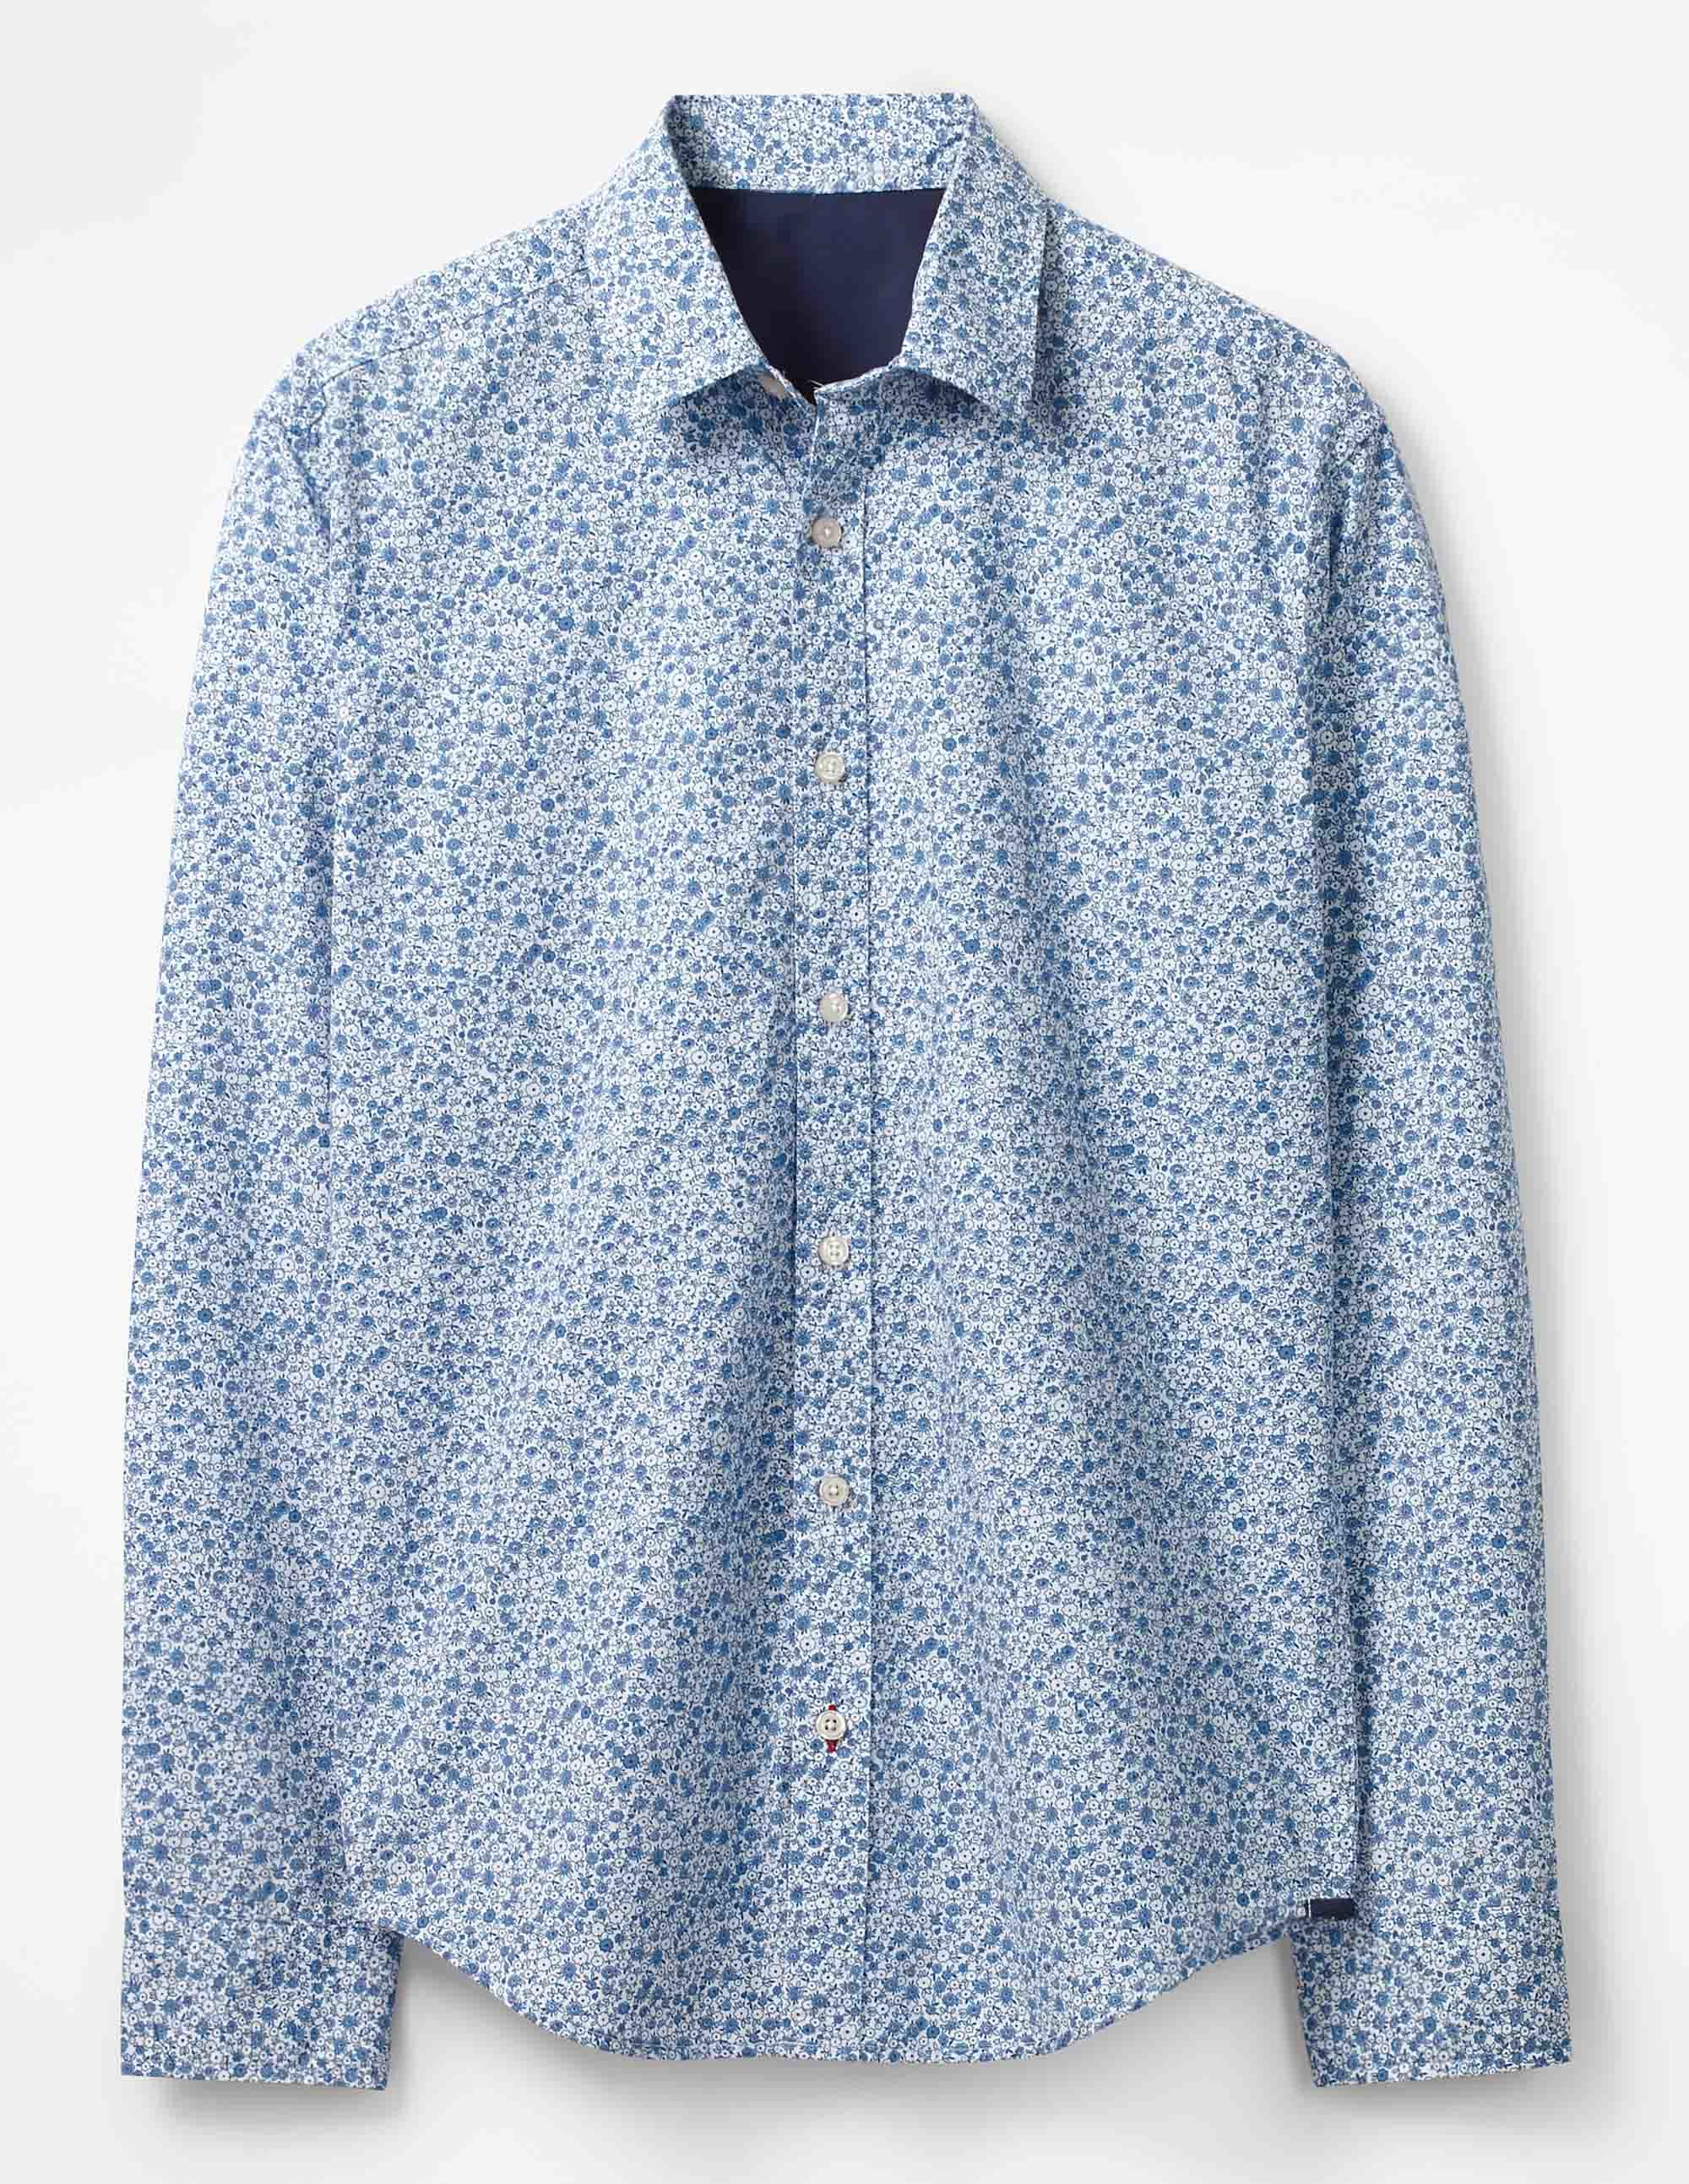 Boden Blues Ditsy Floral Floral Printed Shirt